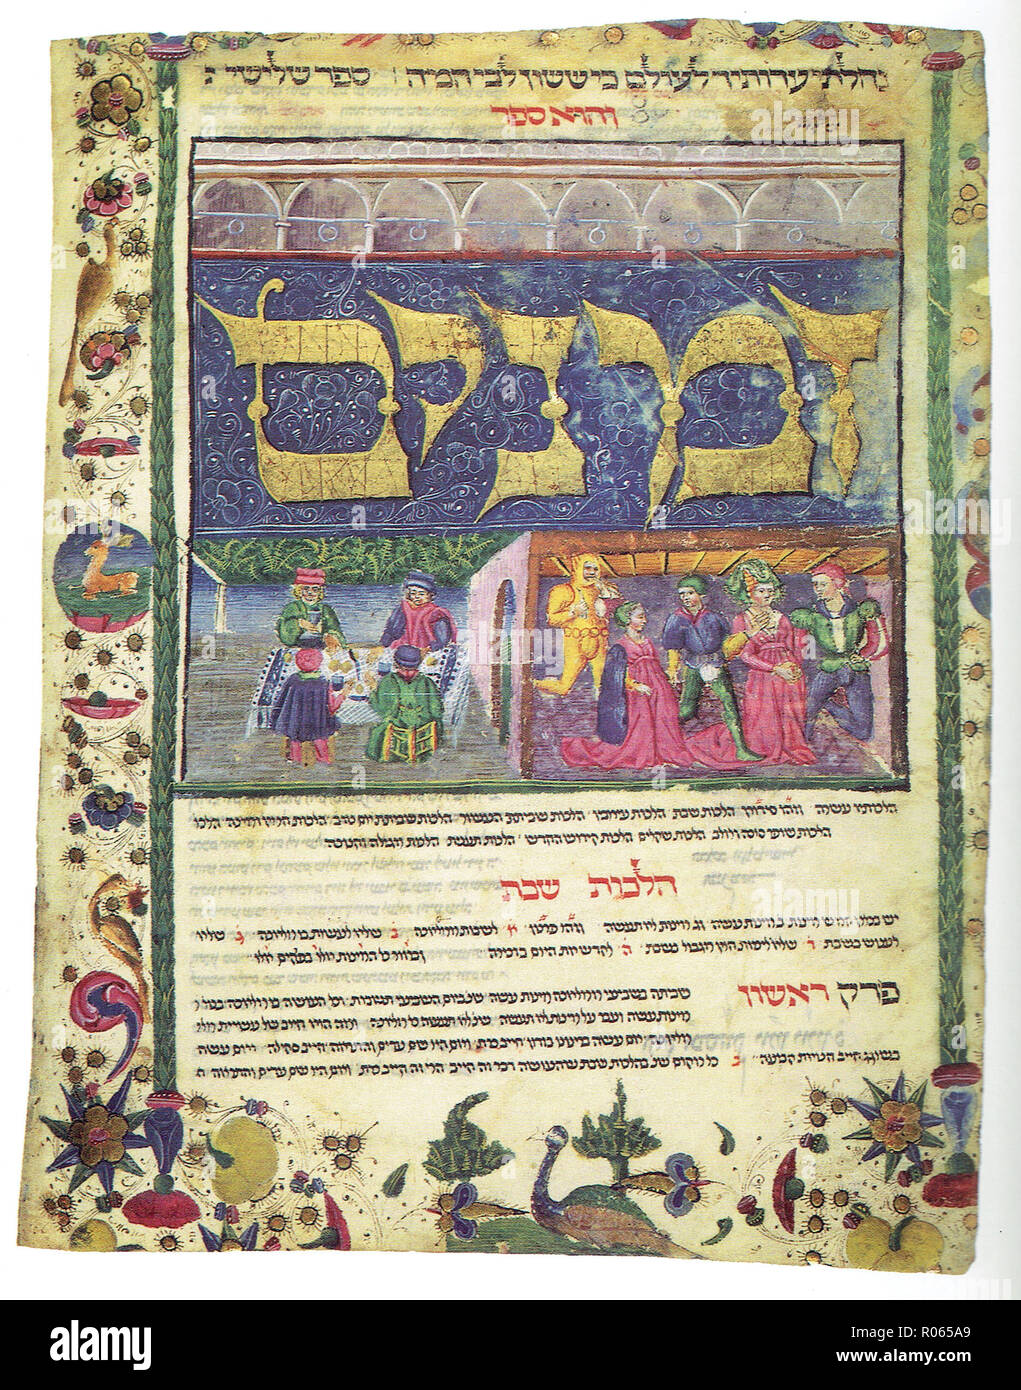 6342. Rabbi Moshe Ben Maymon, Rambam, Mishneh Torah, Italy mid 15th. C. Stock Photo